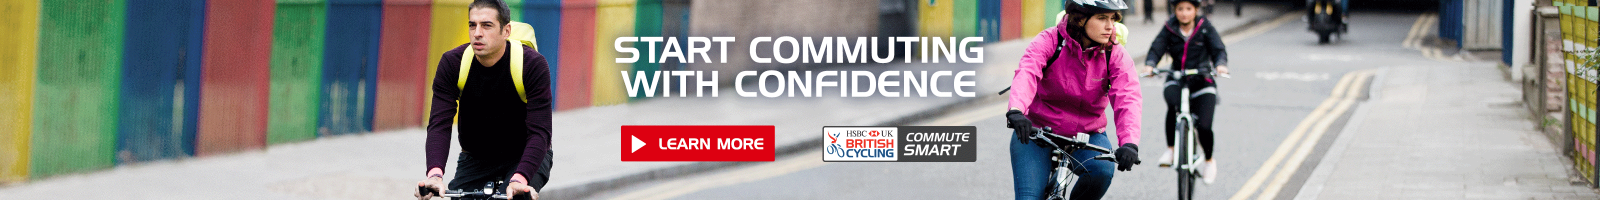 Commute with confidence with British Cycling's Commute Smart